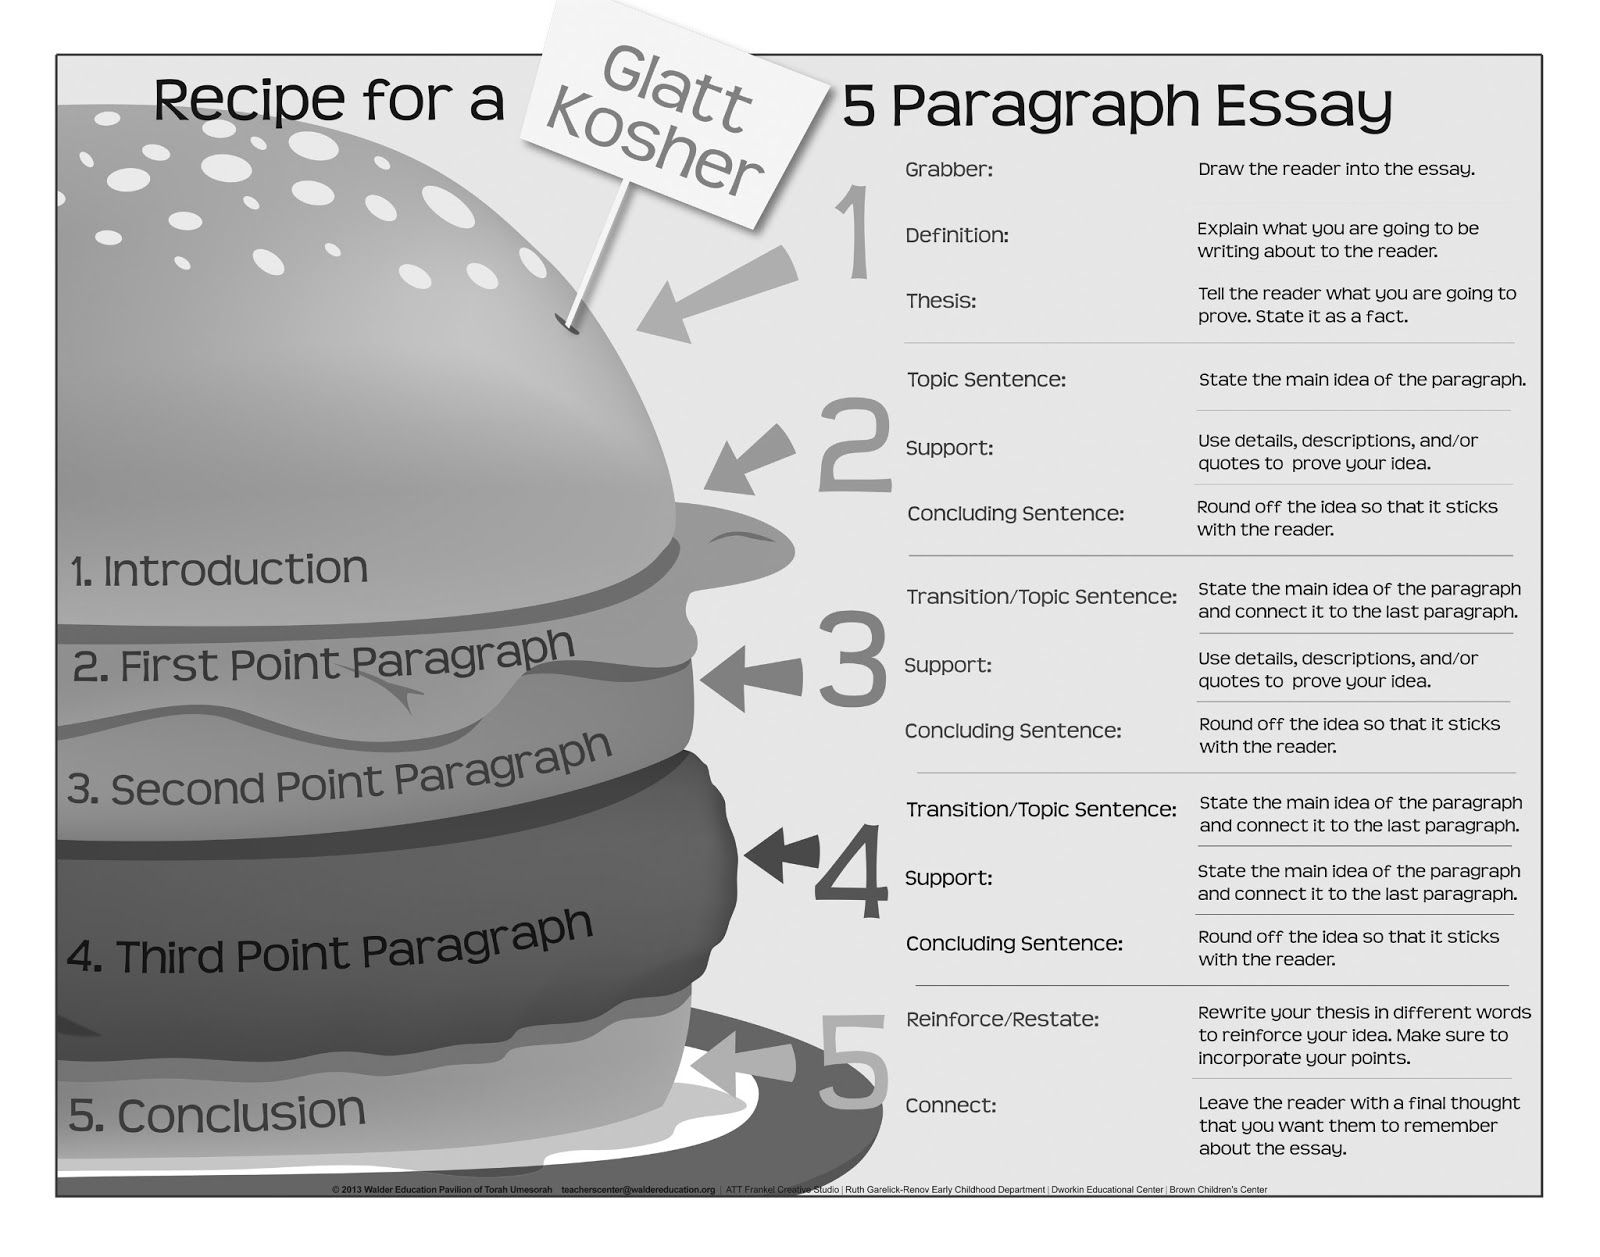 5 paragraph essay conclusion The concluding paragraph below is an outline for a hypothetical, abstract essay with five main sections: v: conclusion transition from last body paragraph.